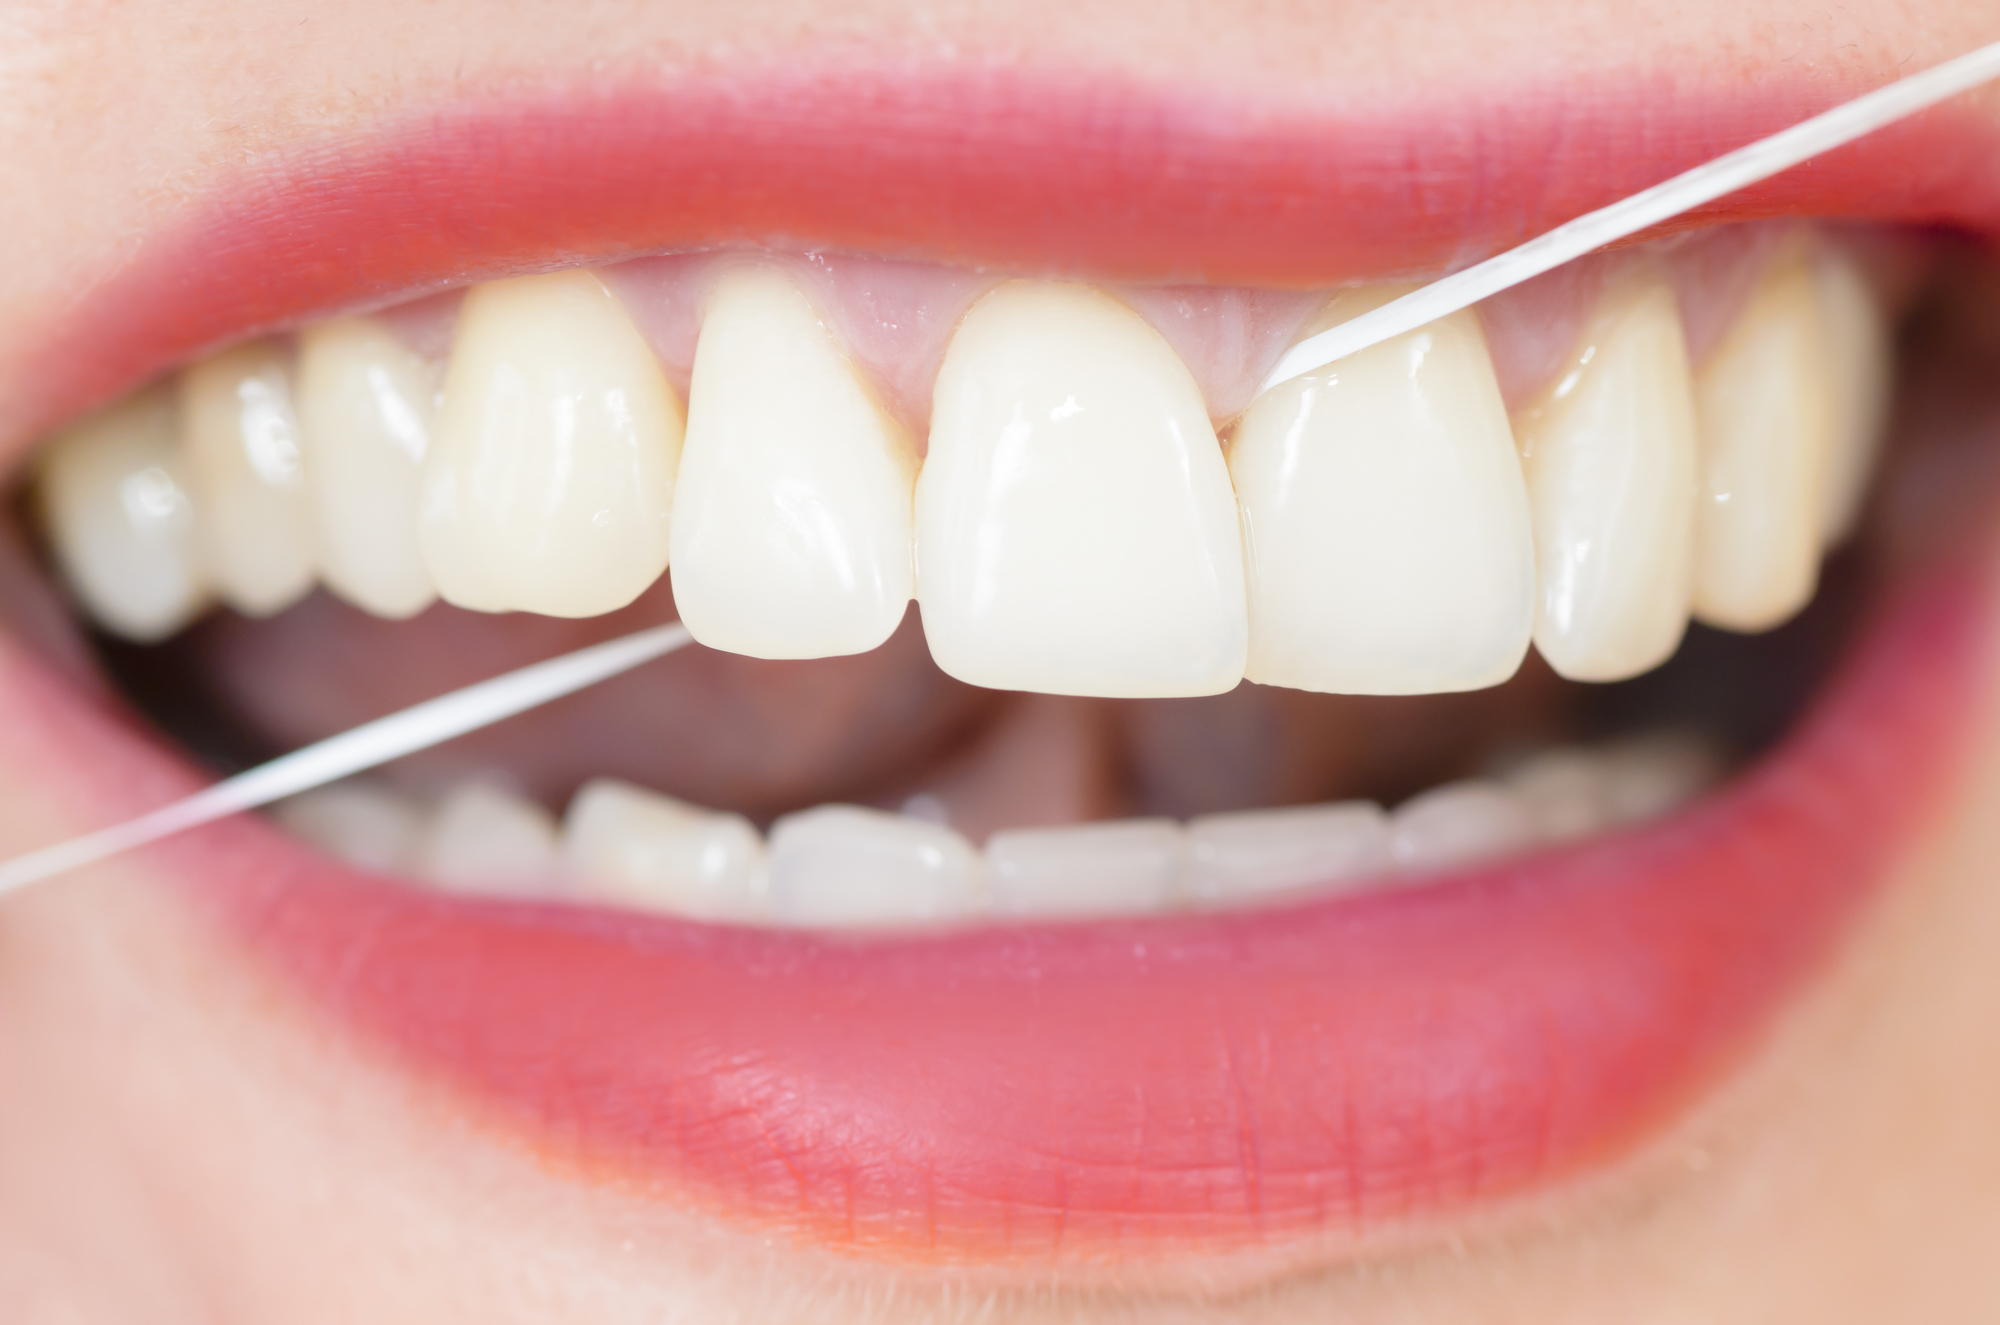 Learn the Symptoms, Risks, and Treatment for Gum Disease